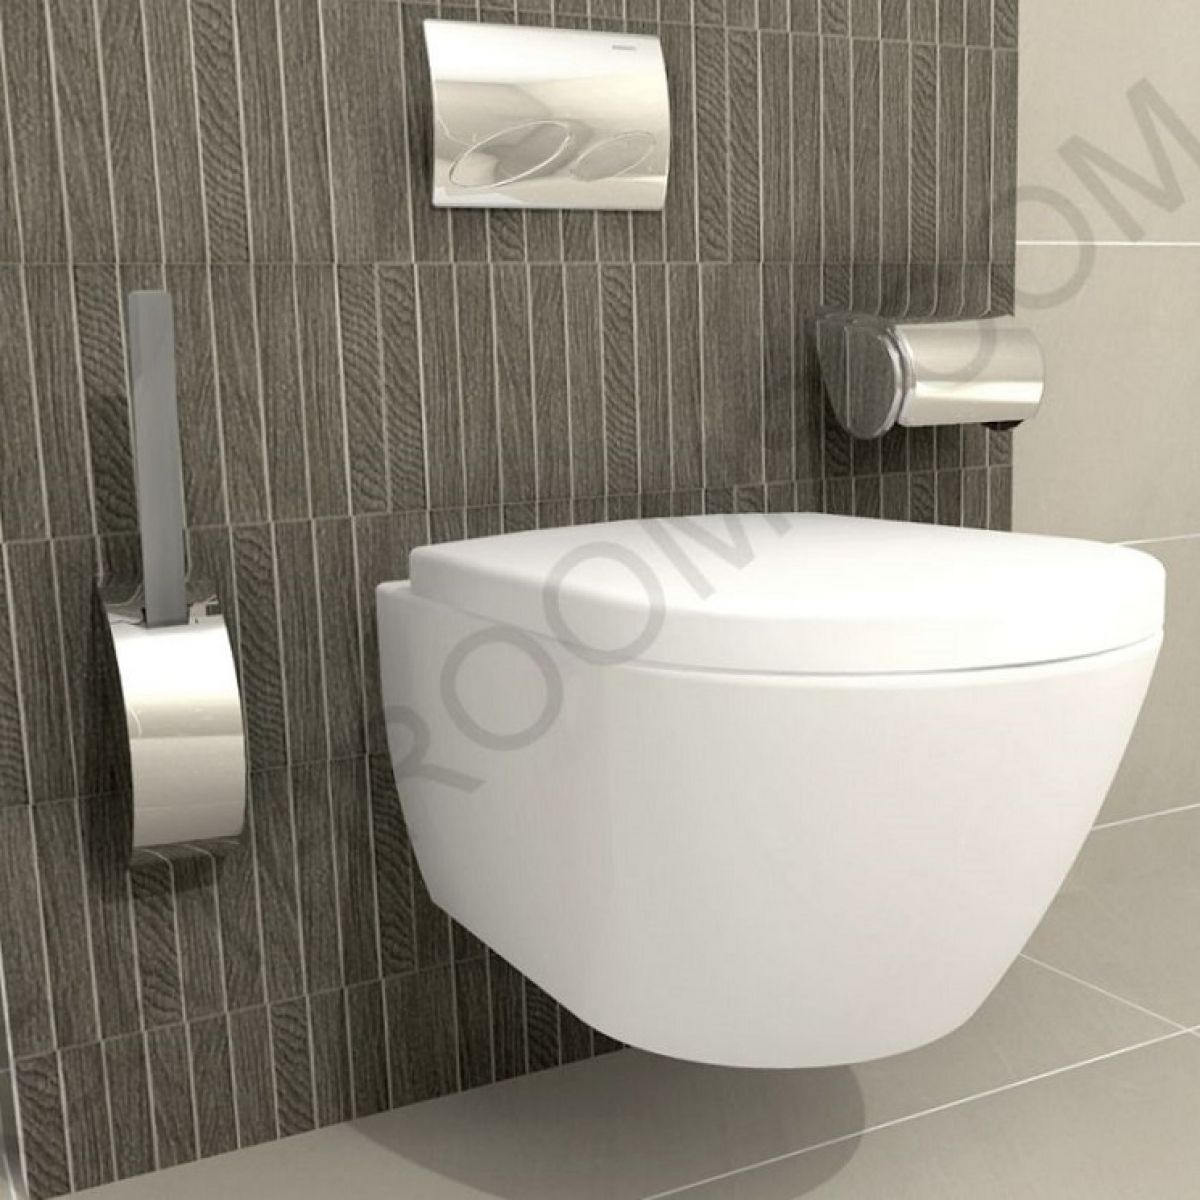 Laufen pro geberit complete wall hung toilet pack uk for Gerberit toilet